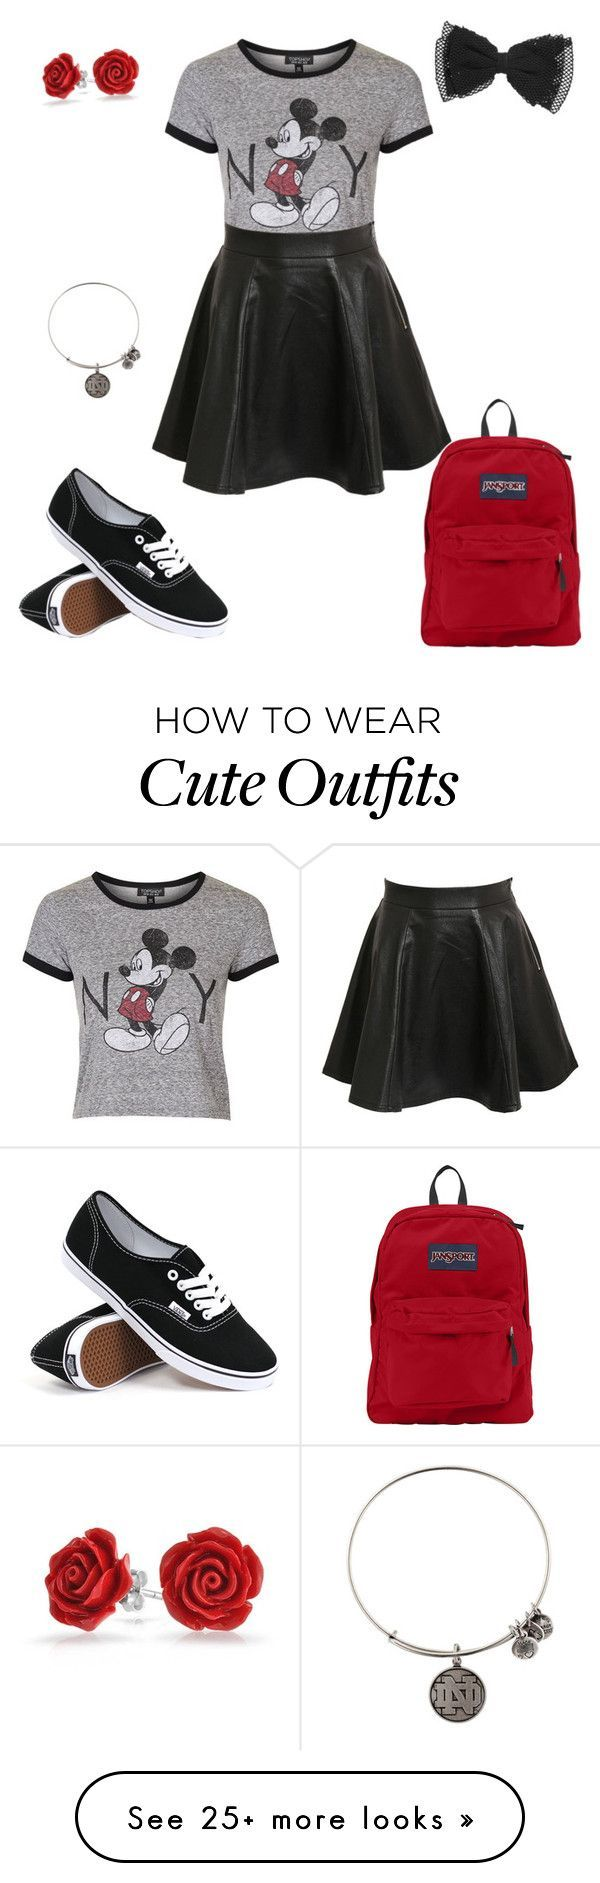 """Cute School Outfit for Spring"" by luvbacon on Polyvore featuring Topshop, Vans, JanSport, Alex and Ani and Bling Jewelry"